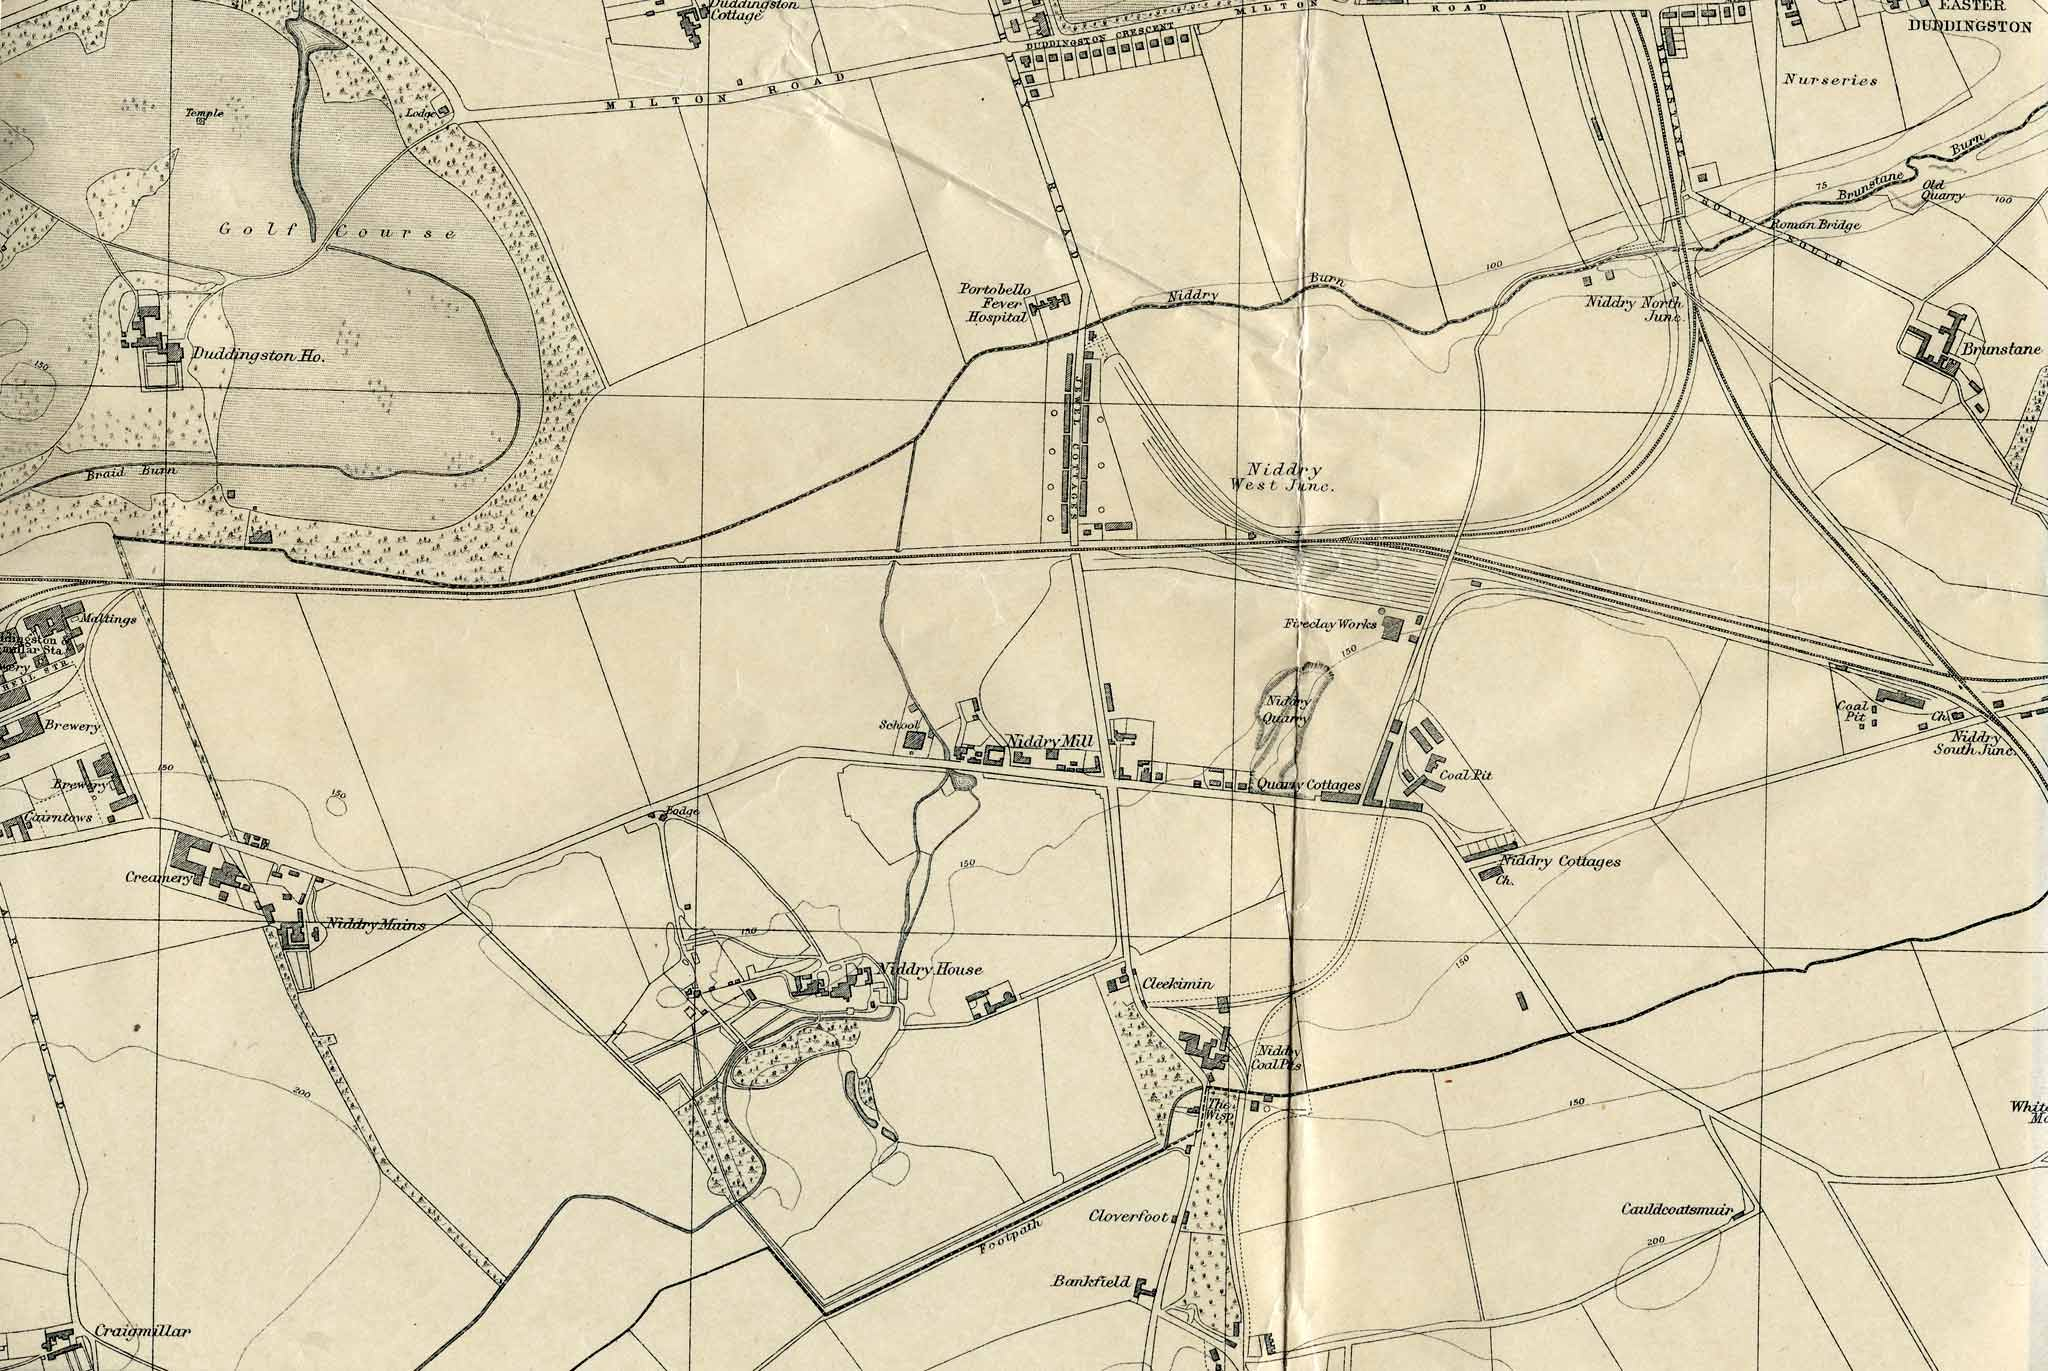 Edinburgh and Leith map, 1925  -  Niddrie and Craigmillar before the housing estates were built